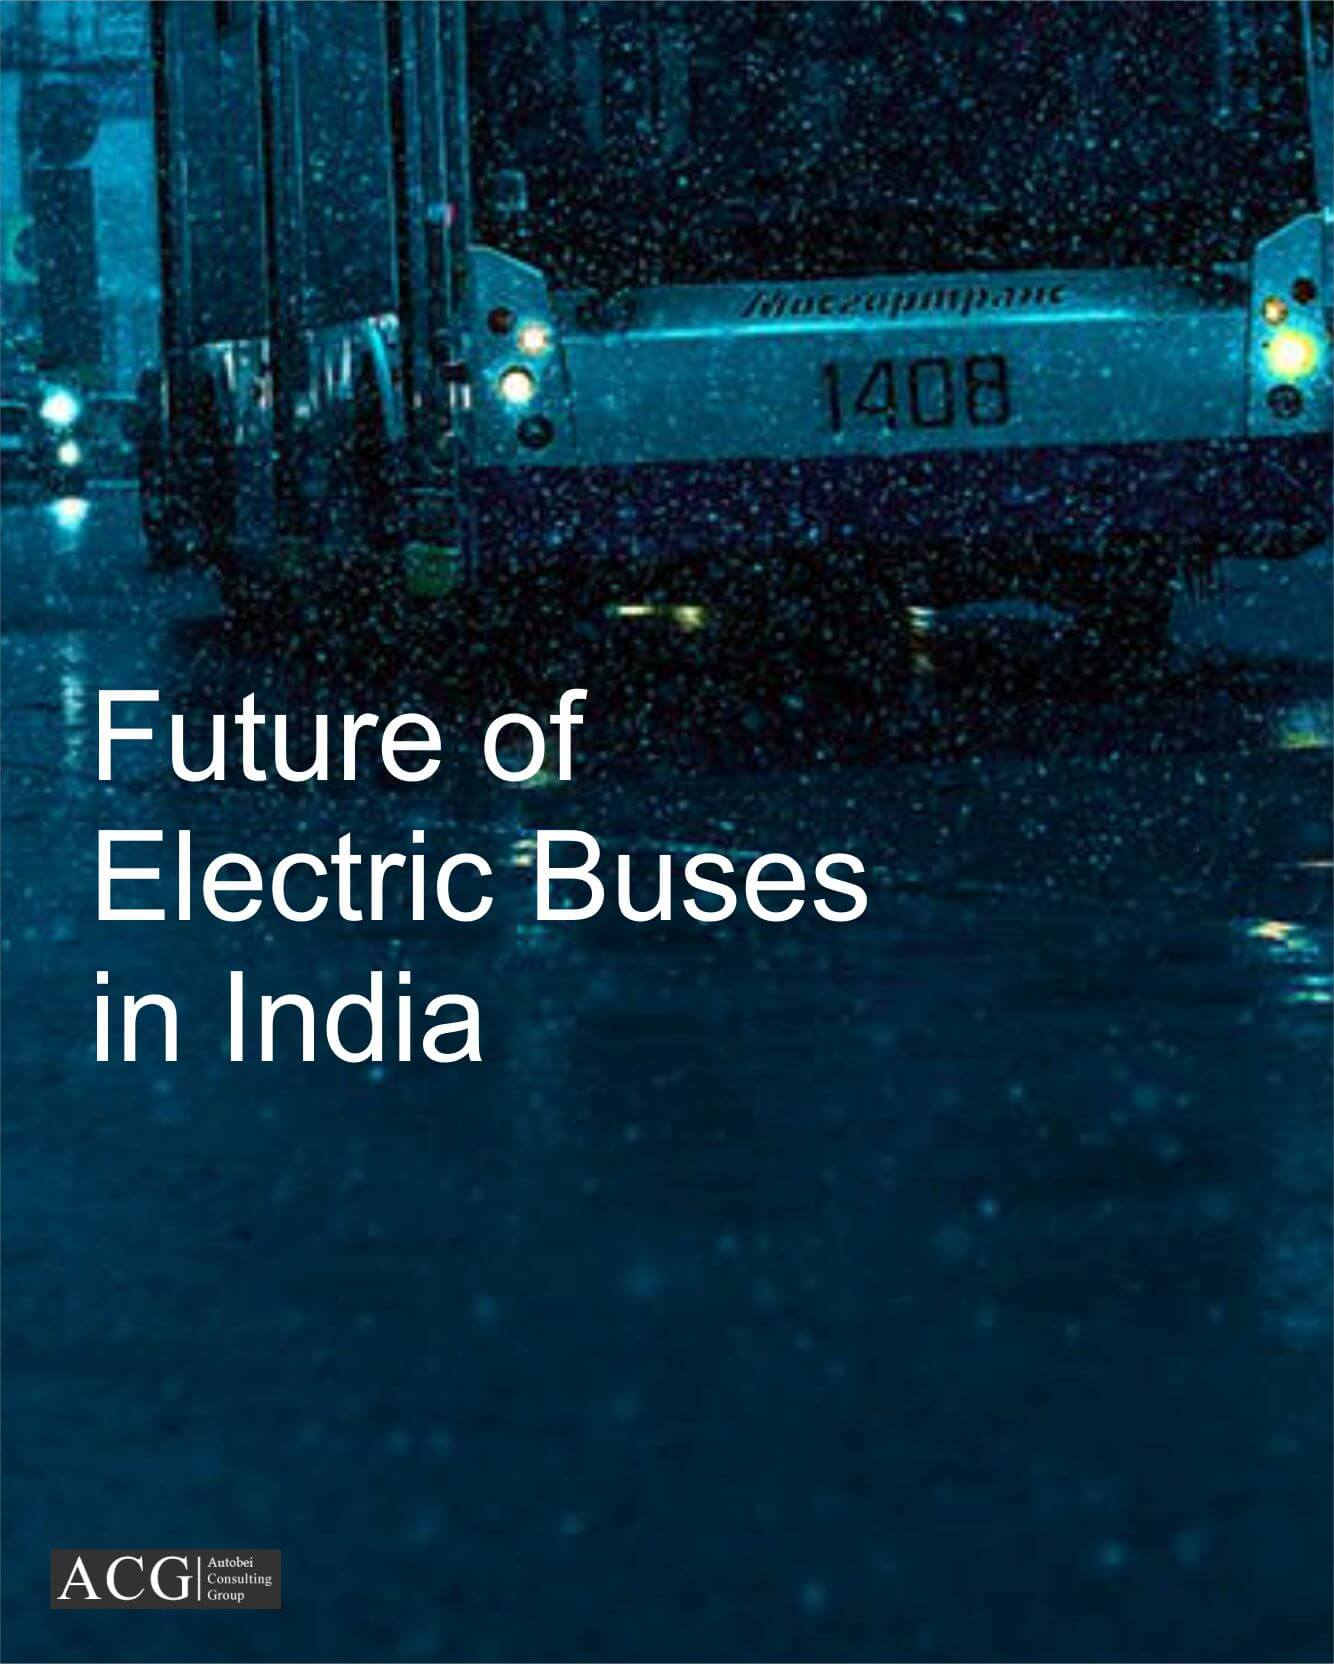 Future of Electric Buses in India